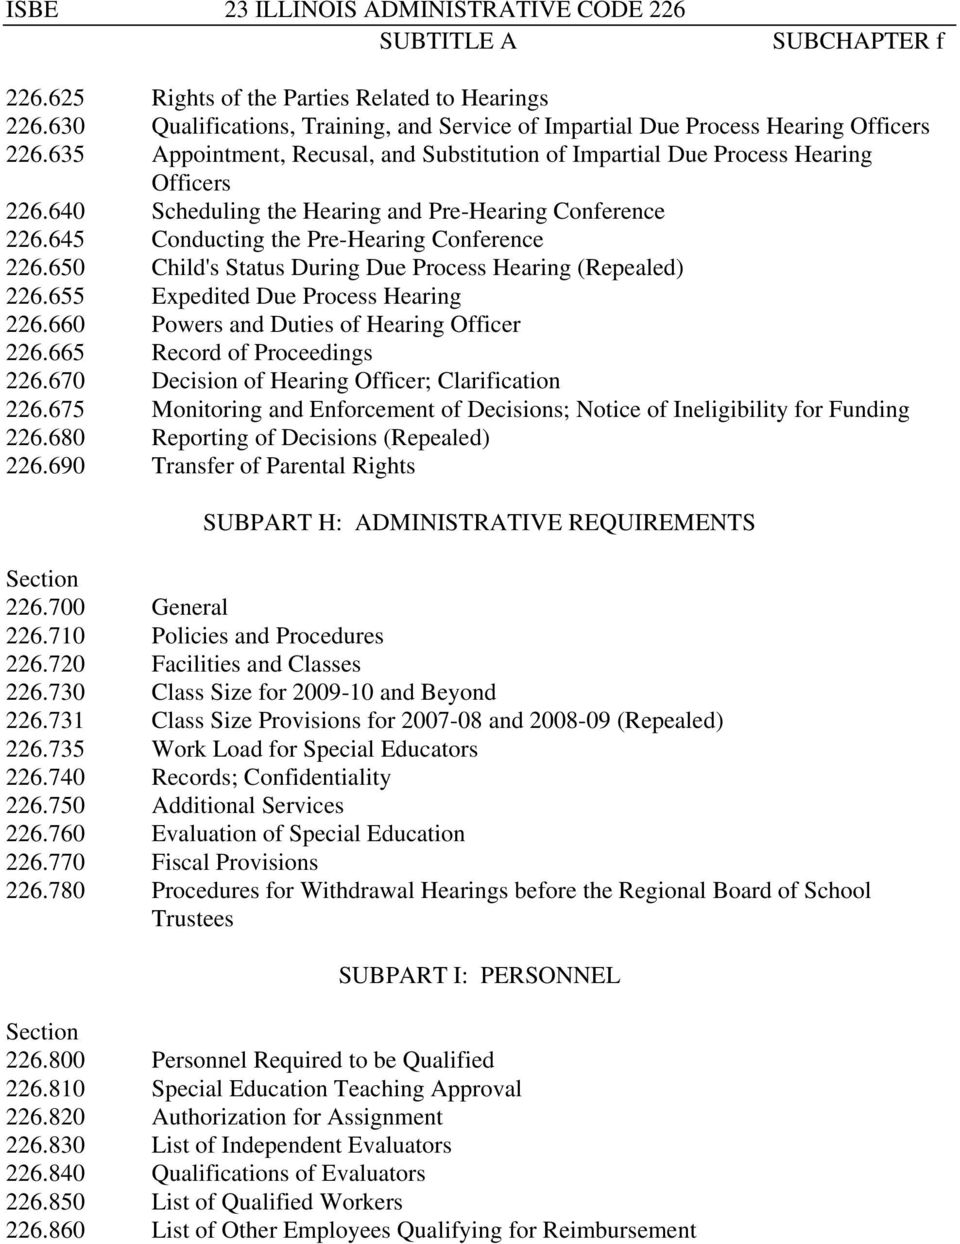 650 Child's Status During Due Process Hearing (Repealed) 226.655 Expedited Due Process Hearing 226.660 Powers and Duties of Hearing Officer 226.665 Record of Proceedings 226.